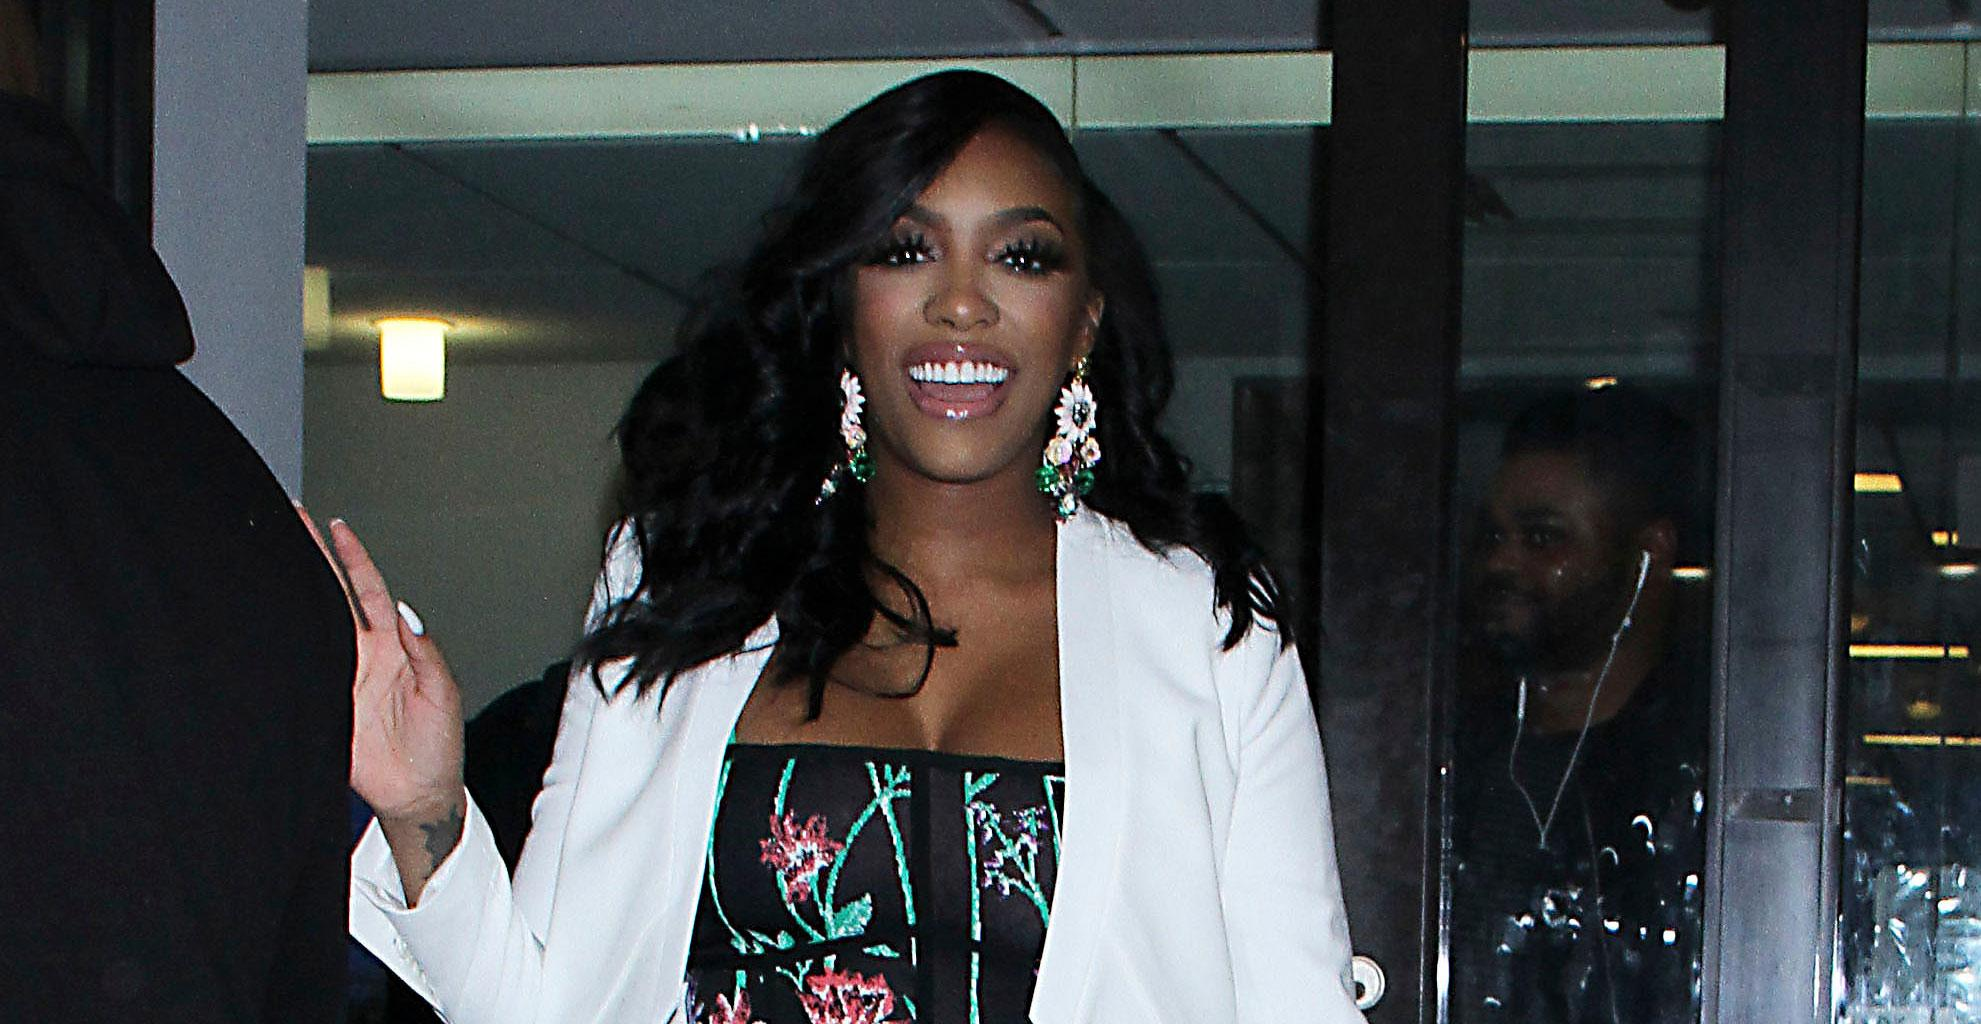 Porsha Williams Shows Fans Her Favorite Dress That She Could Wear Before And During Pregnancy - It's From Her Own Collection